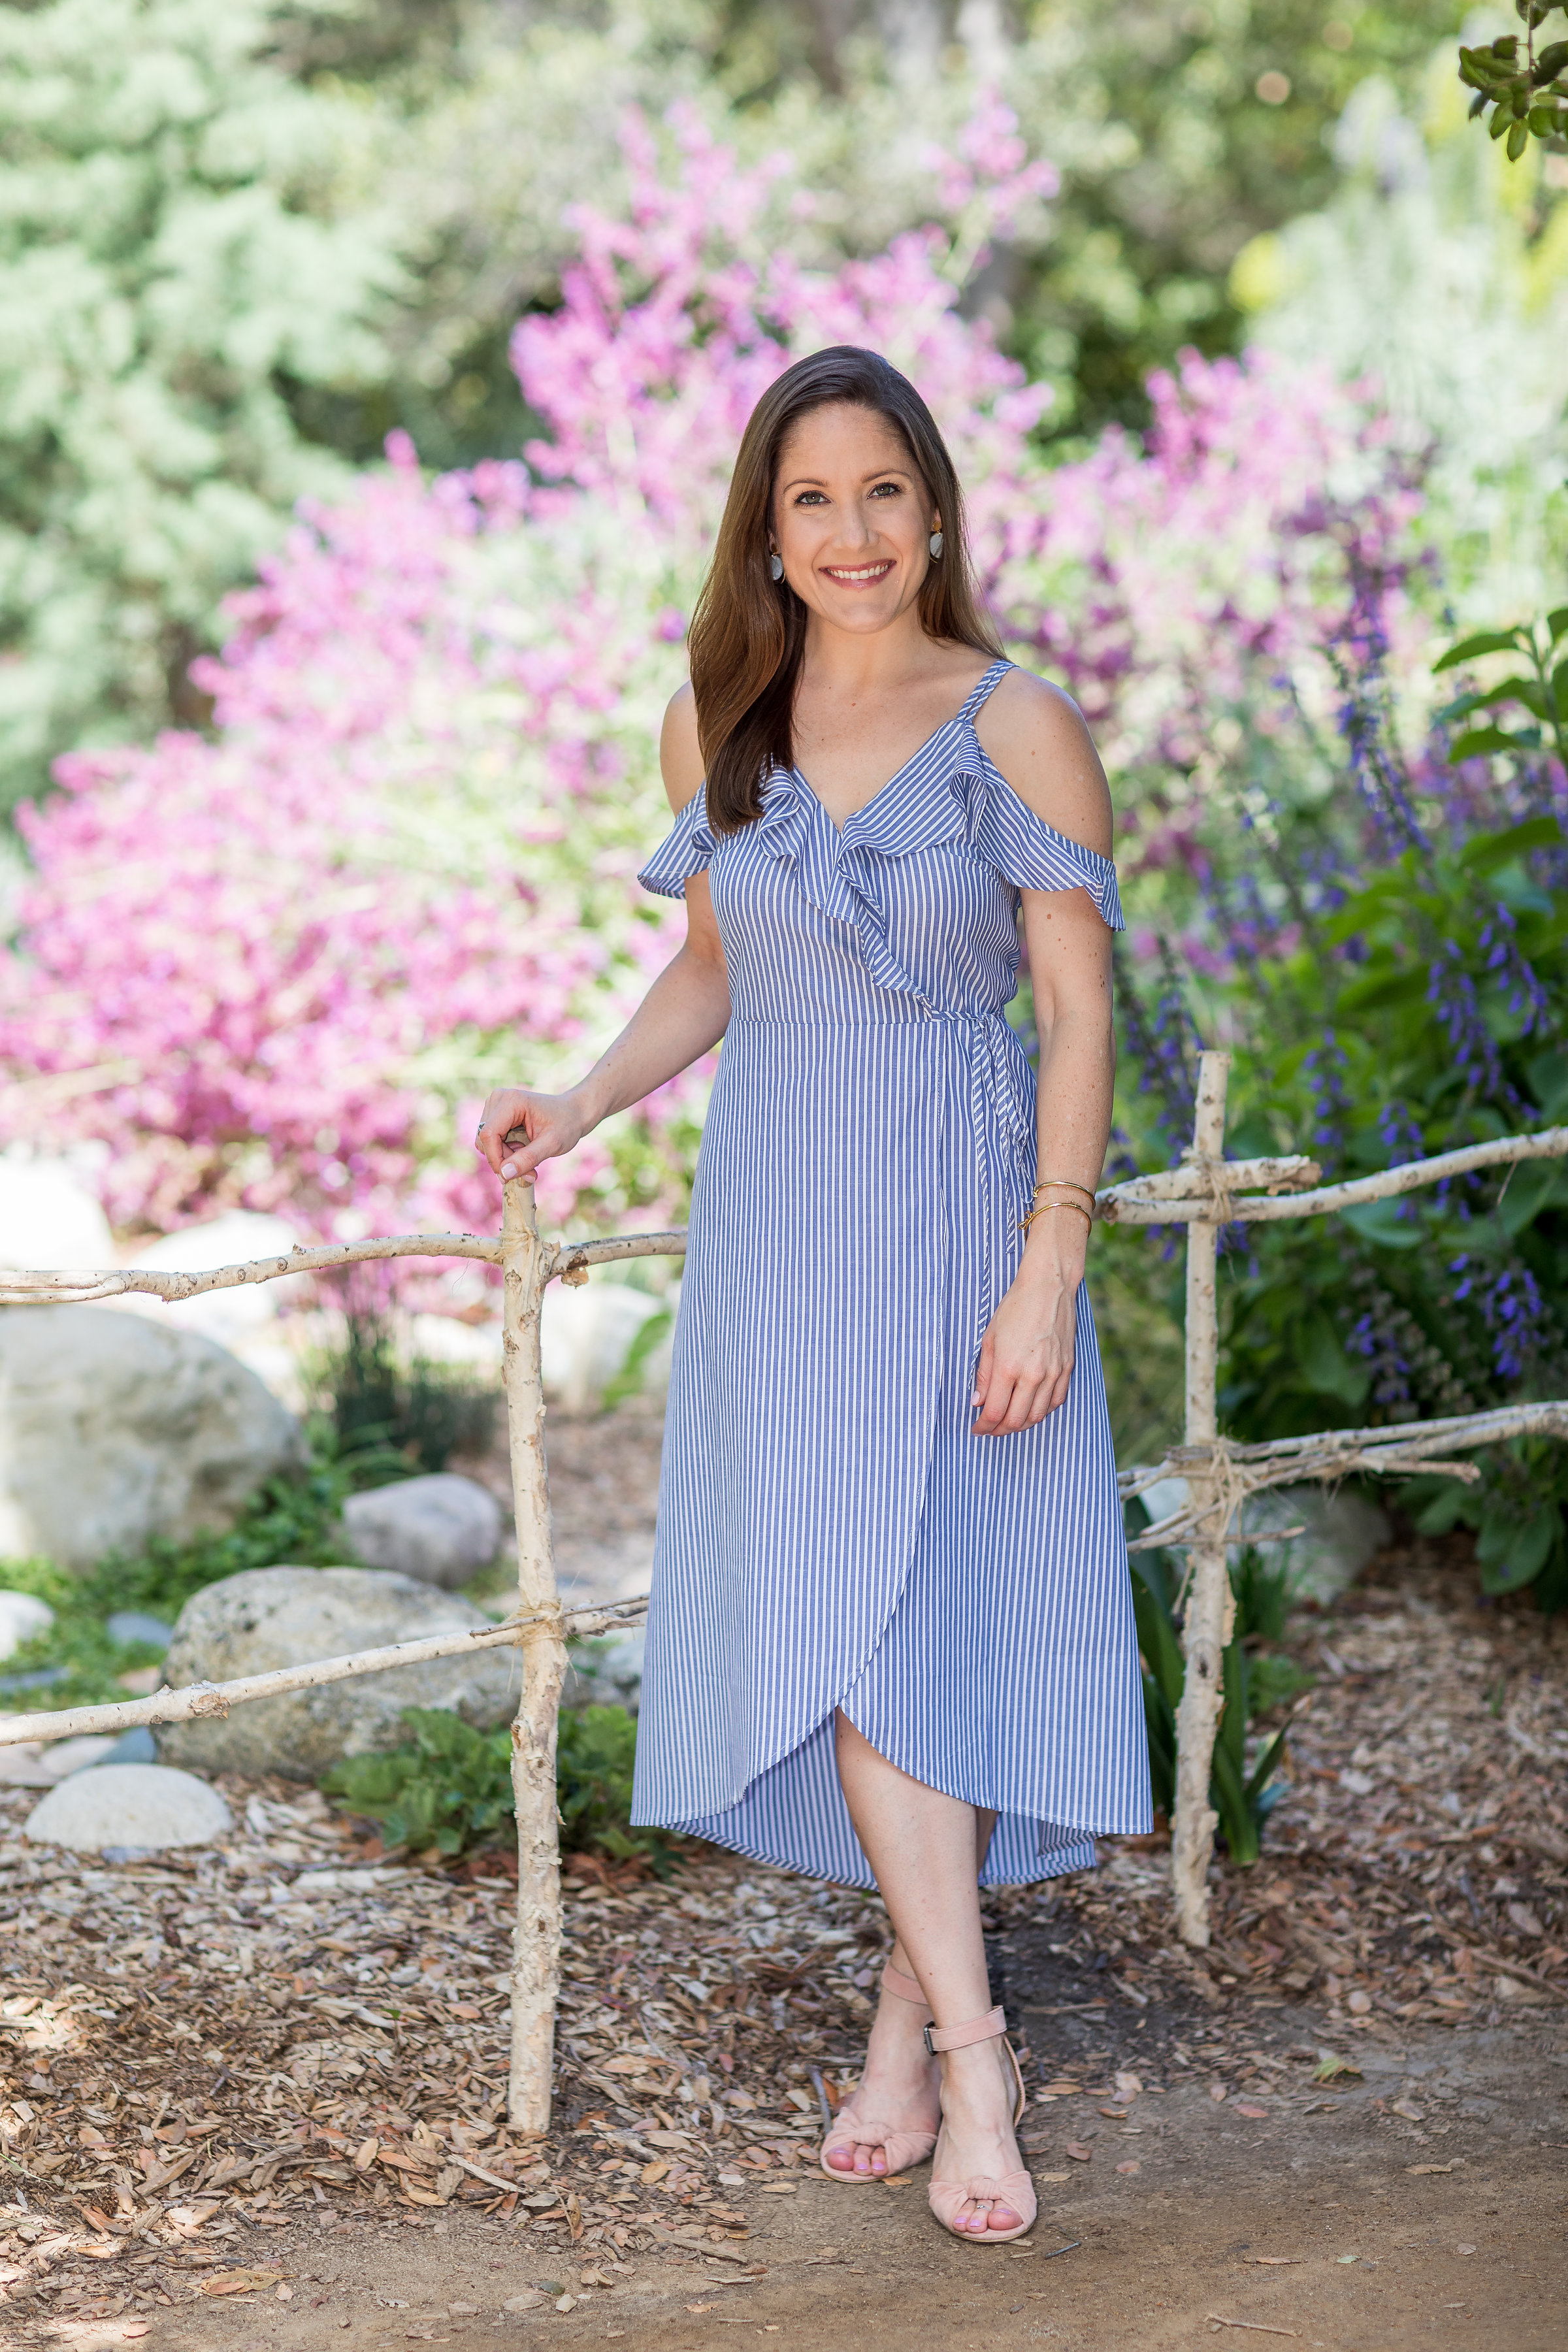 pose idea for adult female in a blue dress in front of a garden.jpg